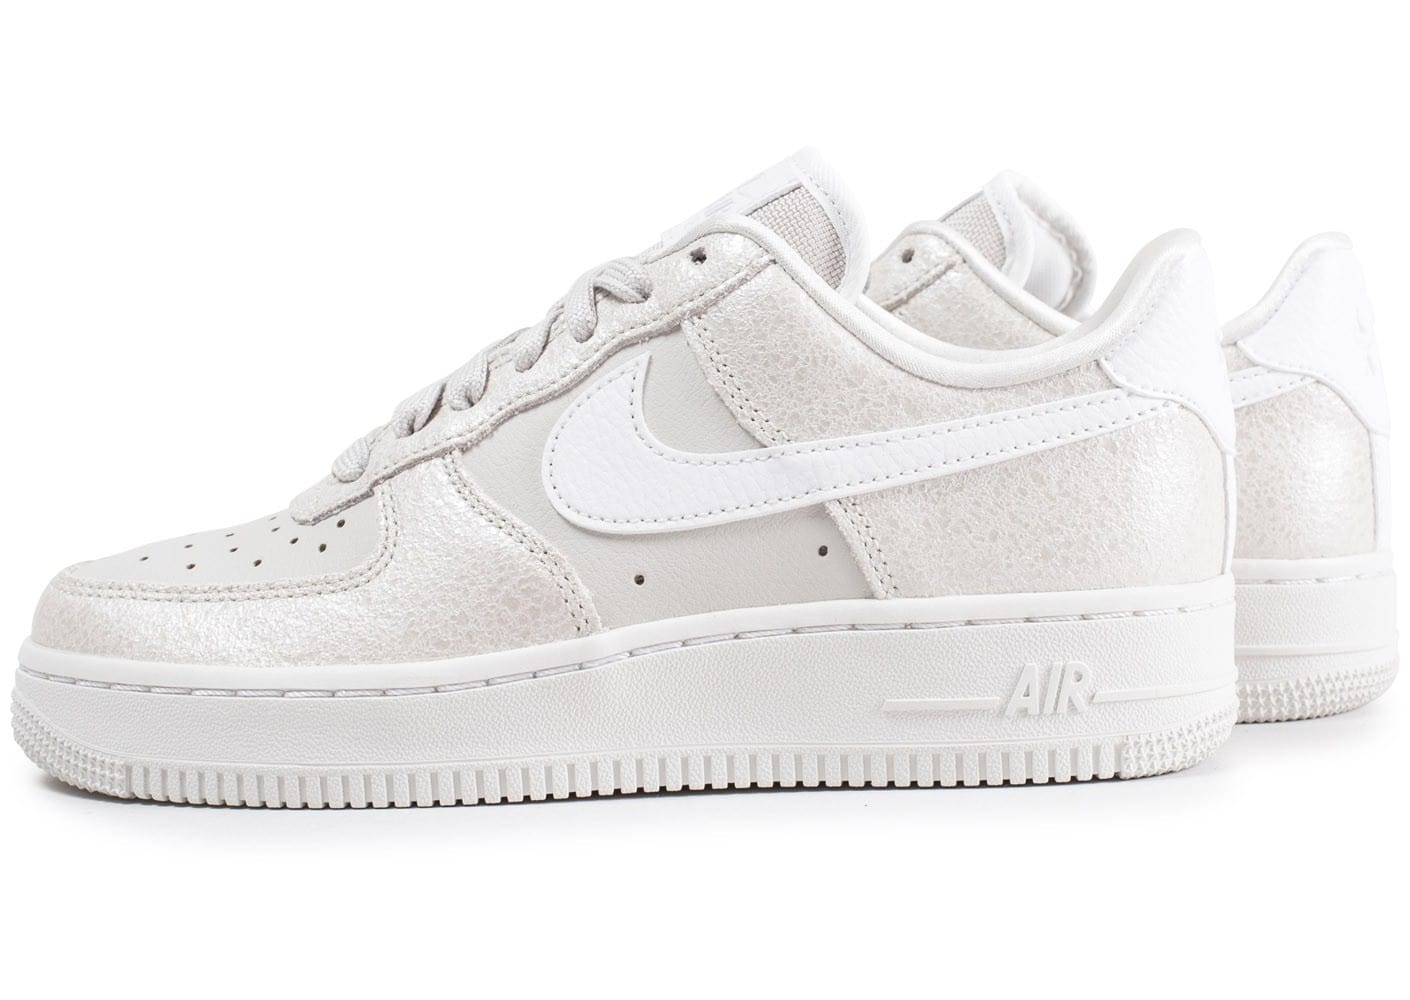 Nike Nike Nike Air Force 1 Low Premium blanc cass 731835